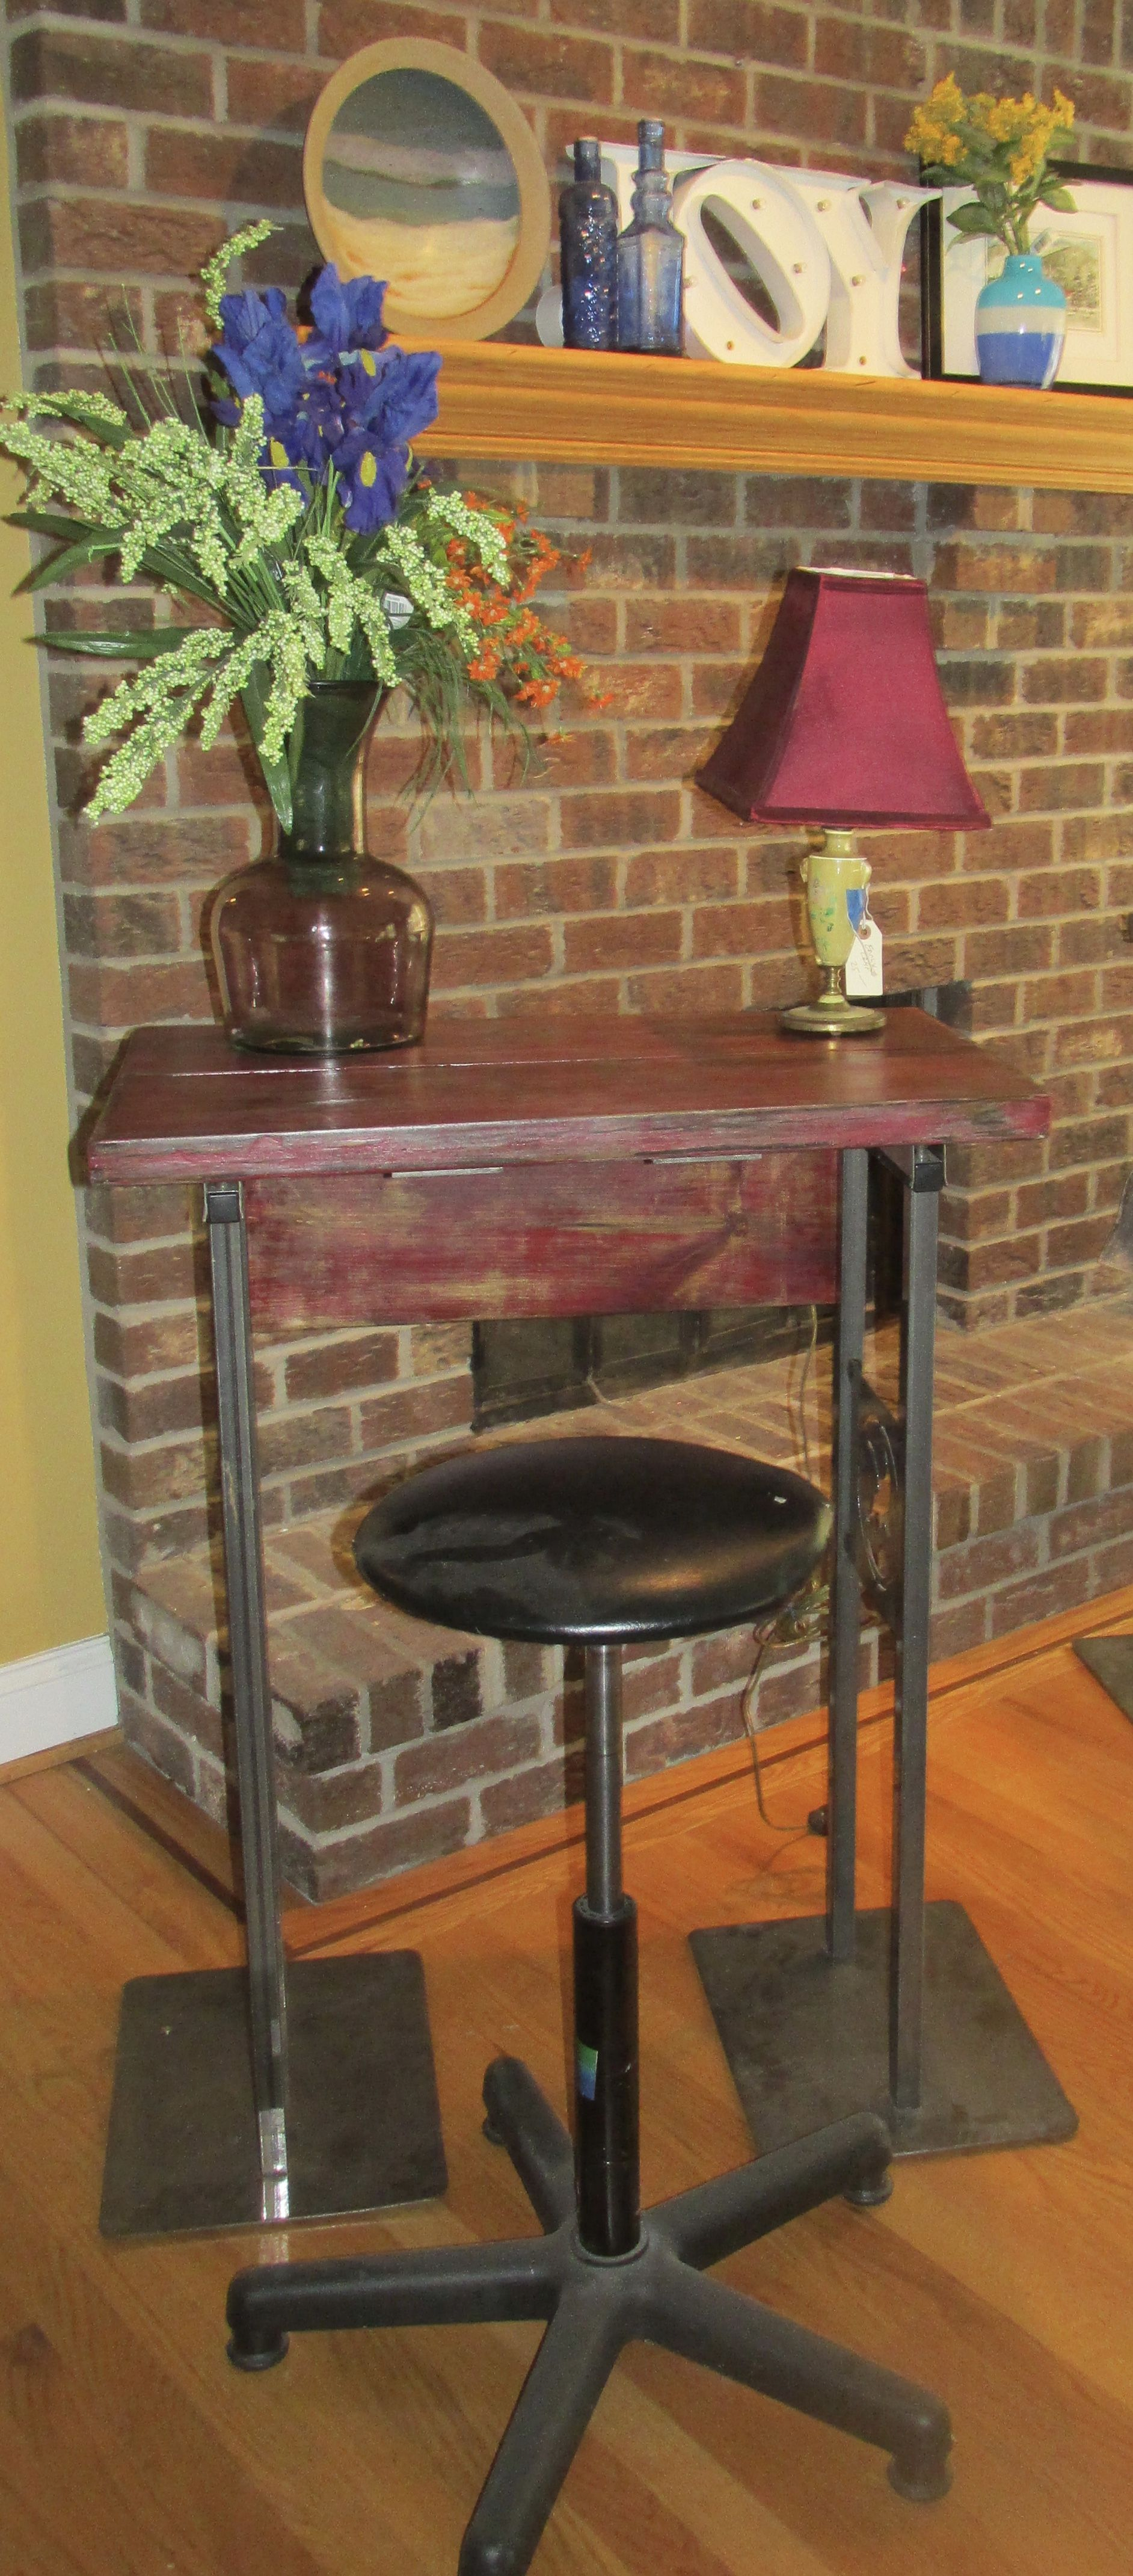 small red paint barn wood rustic industrial breakfast bar desk accent table apartment dorm size made from gander mountain closeout signage and old drum set seat metal glass